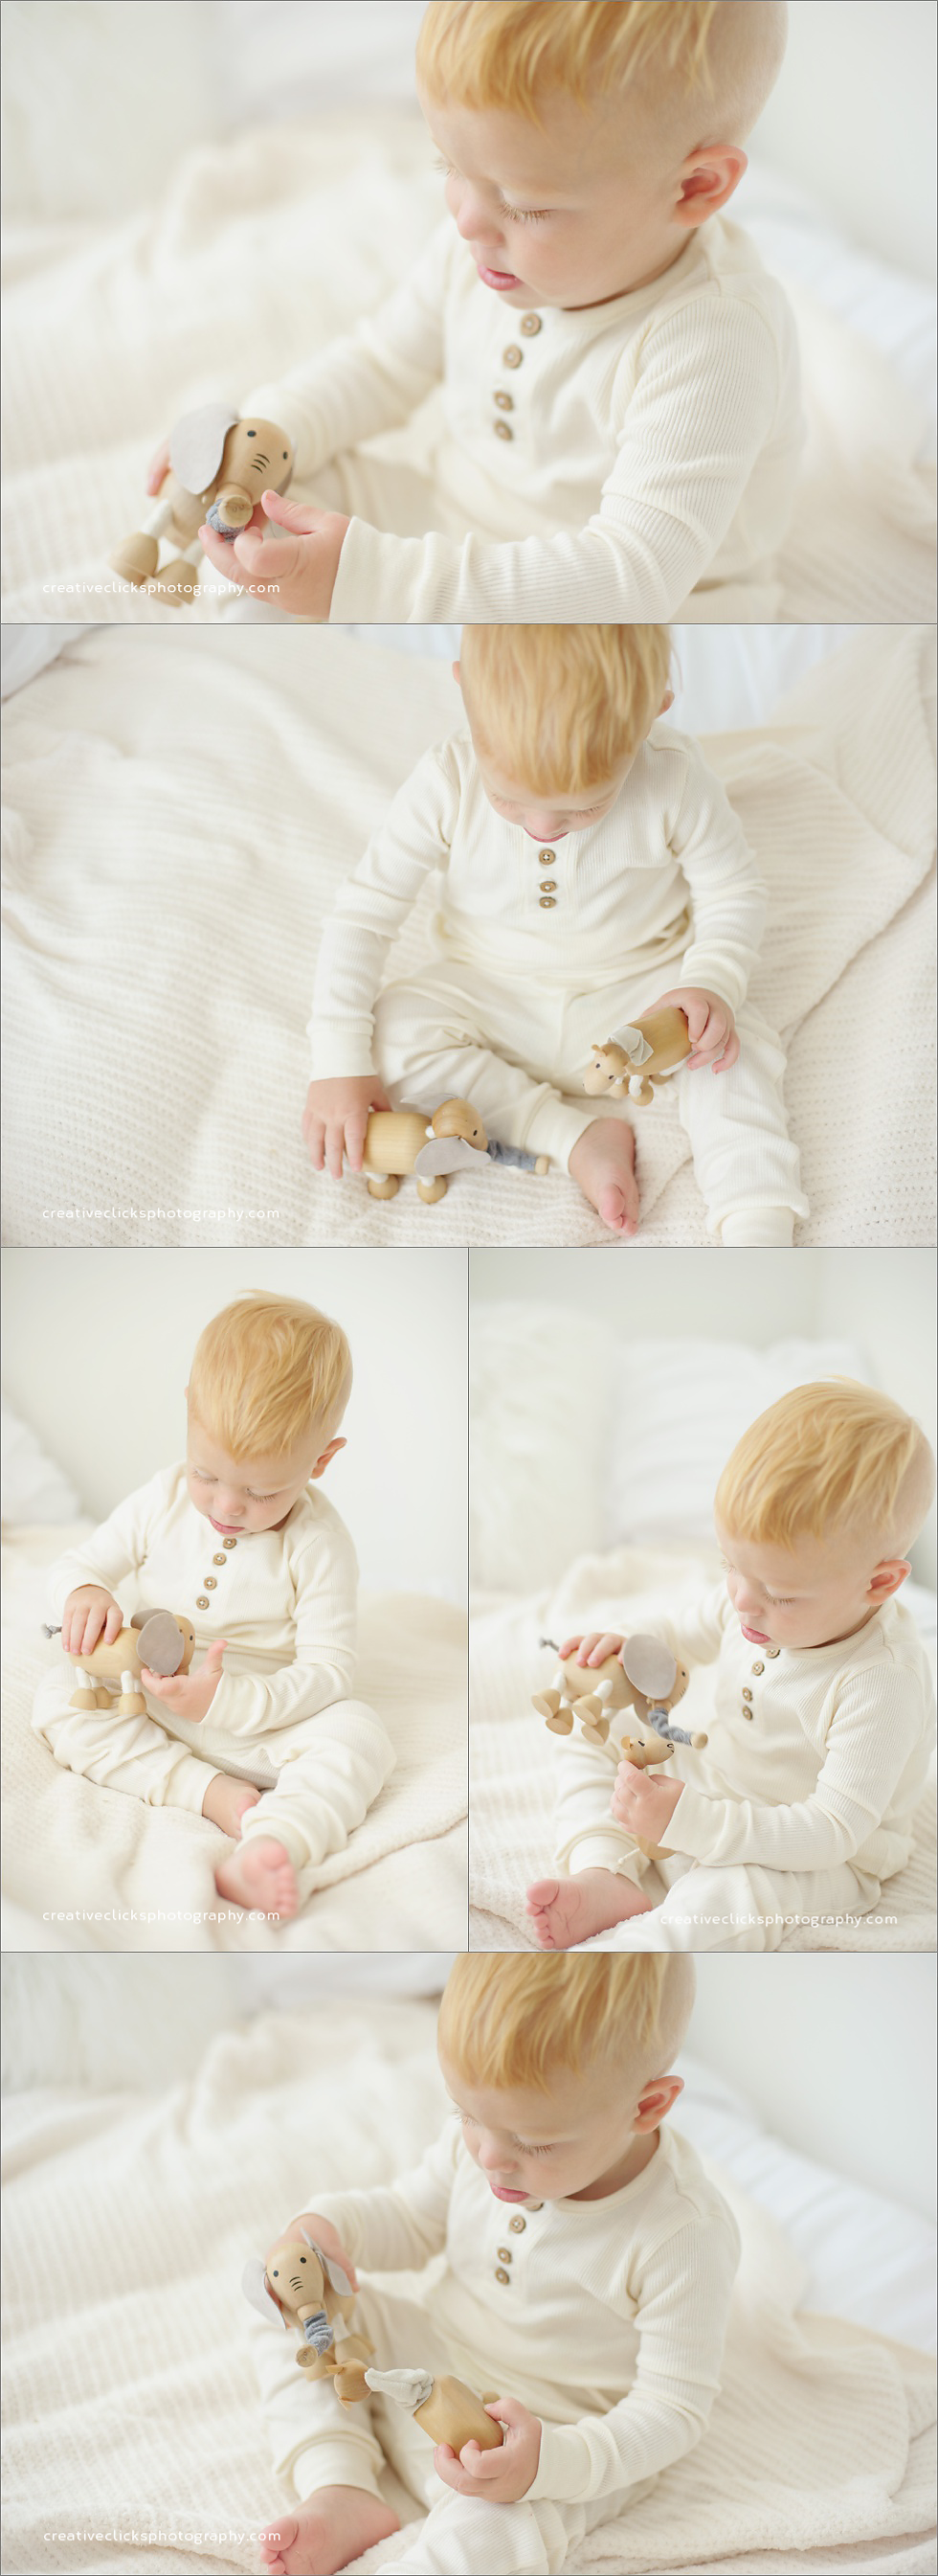 baby boy playing with wooden toys at portrait session